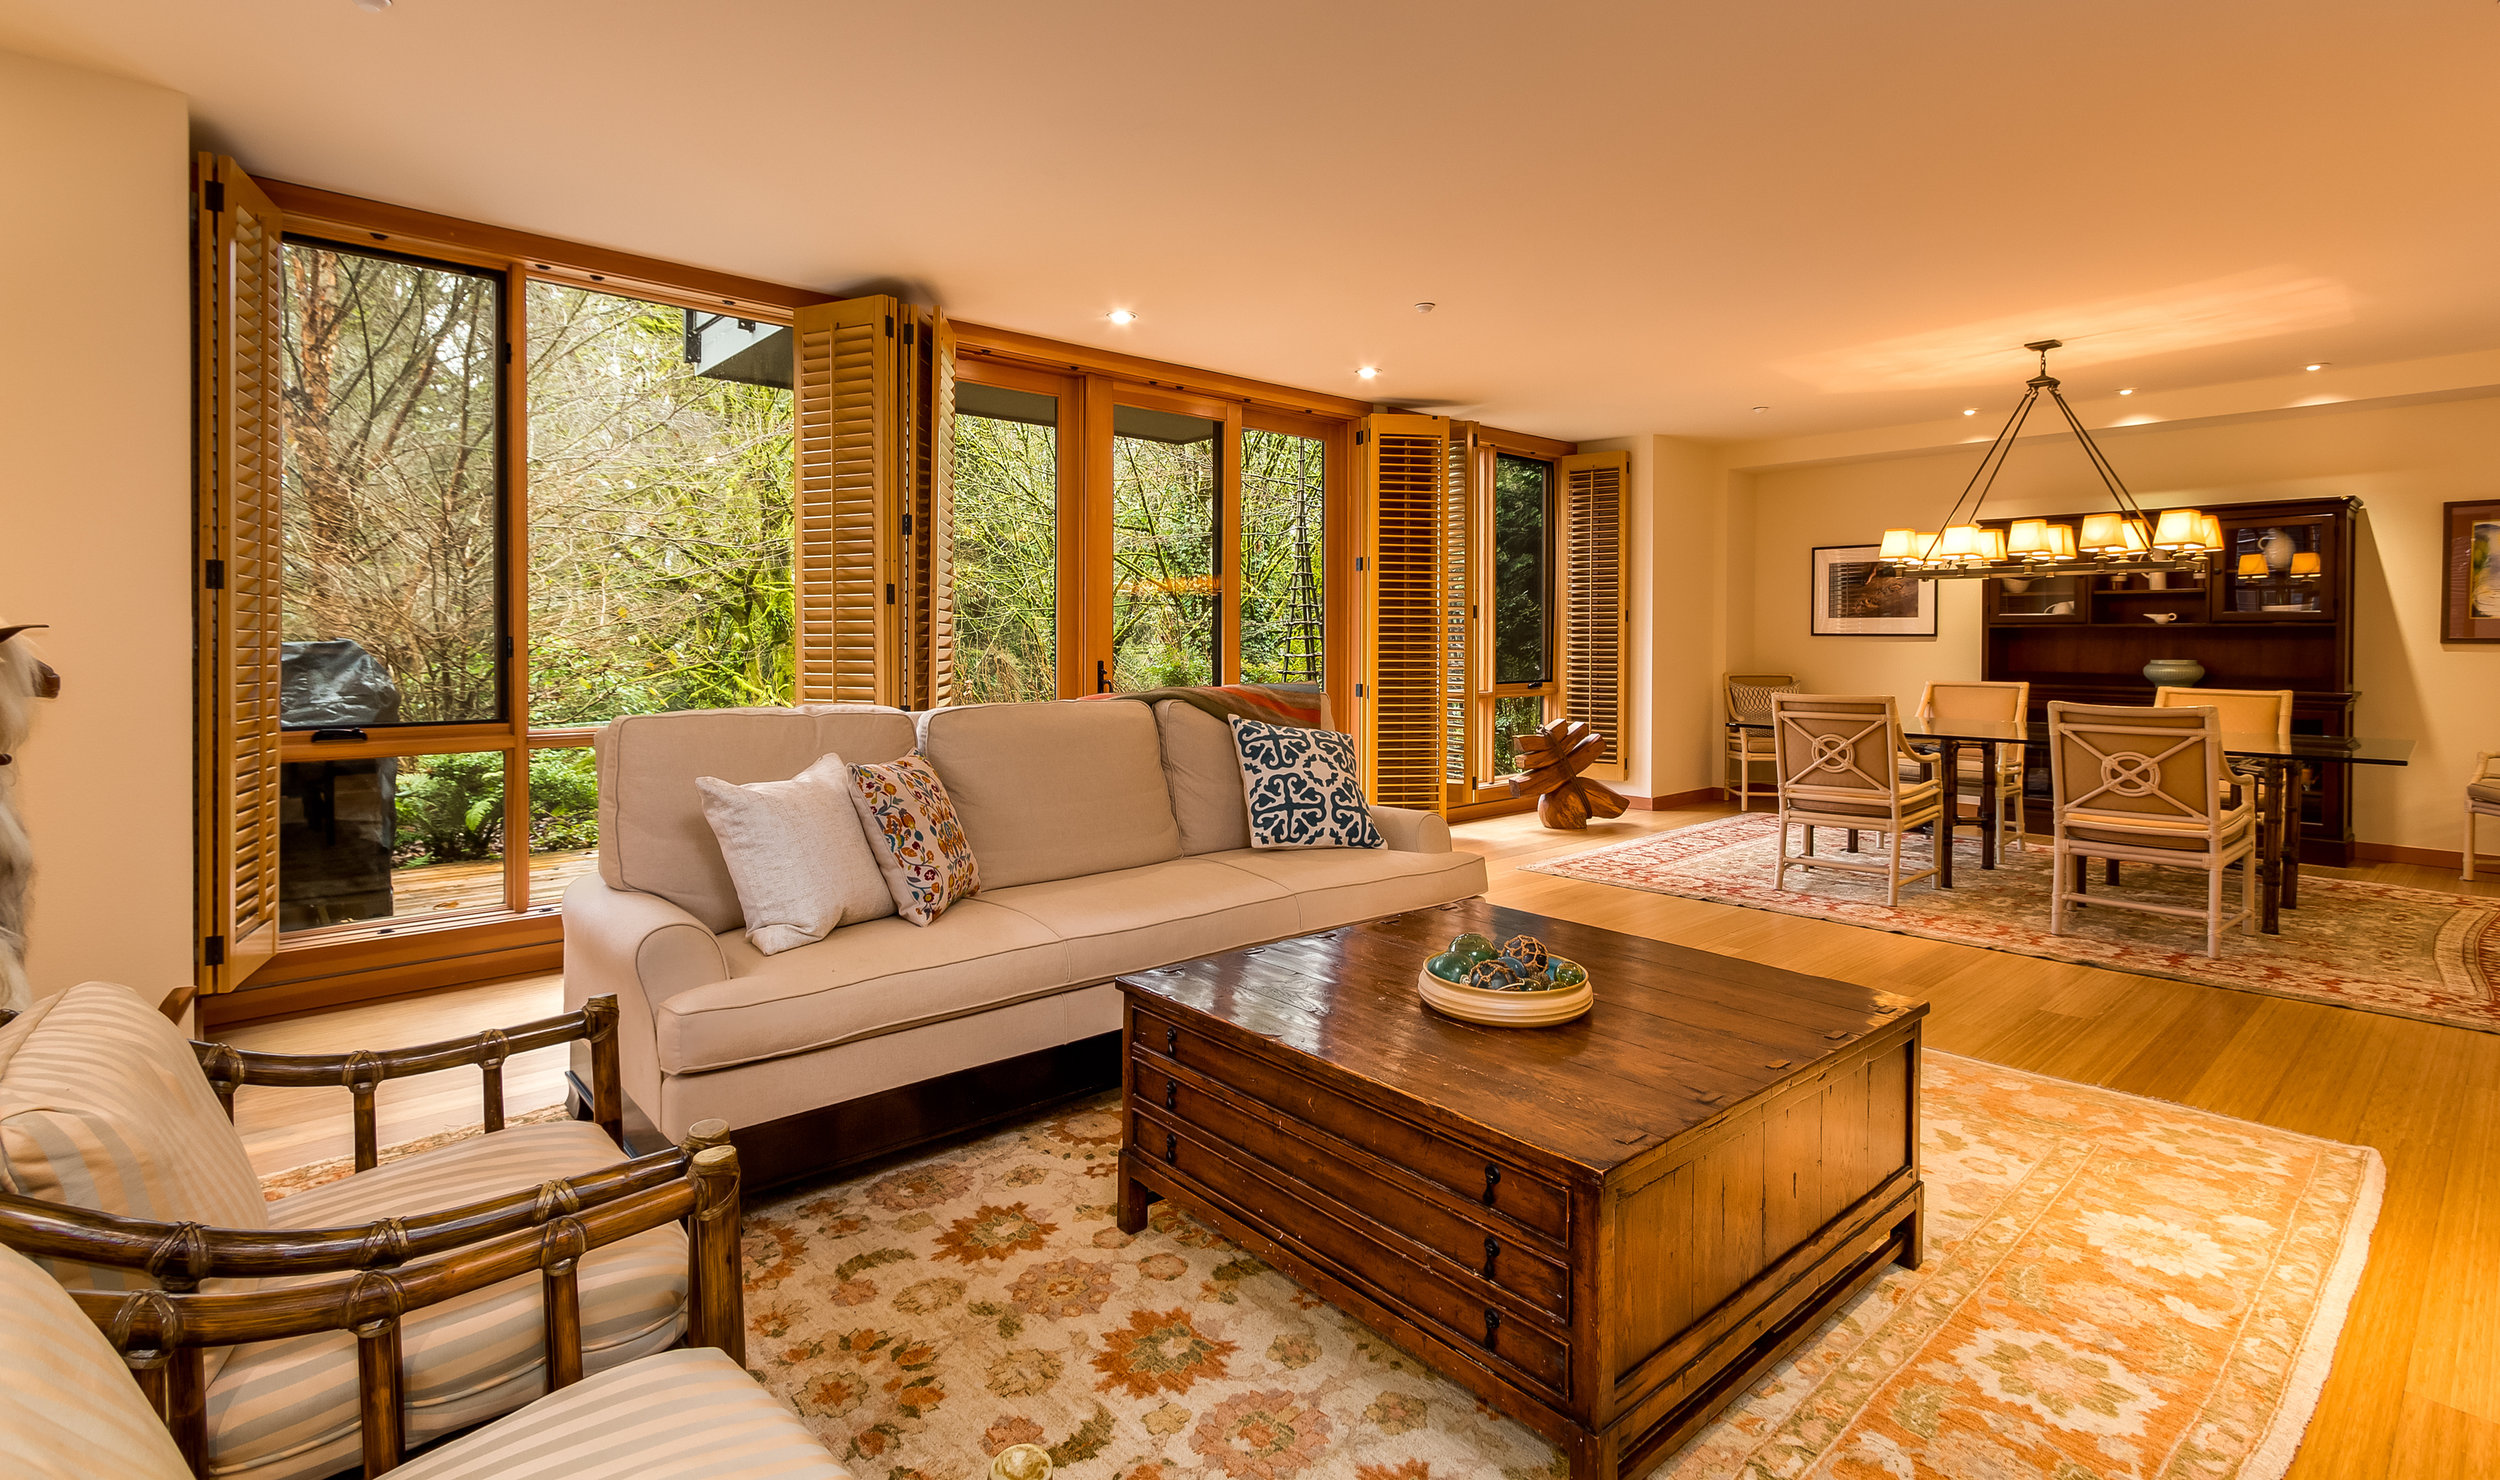 This shot of the living room shows the windows with their custom designed wood plantation shutters.